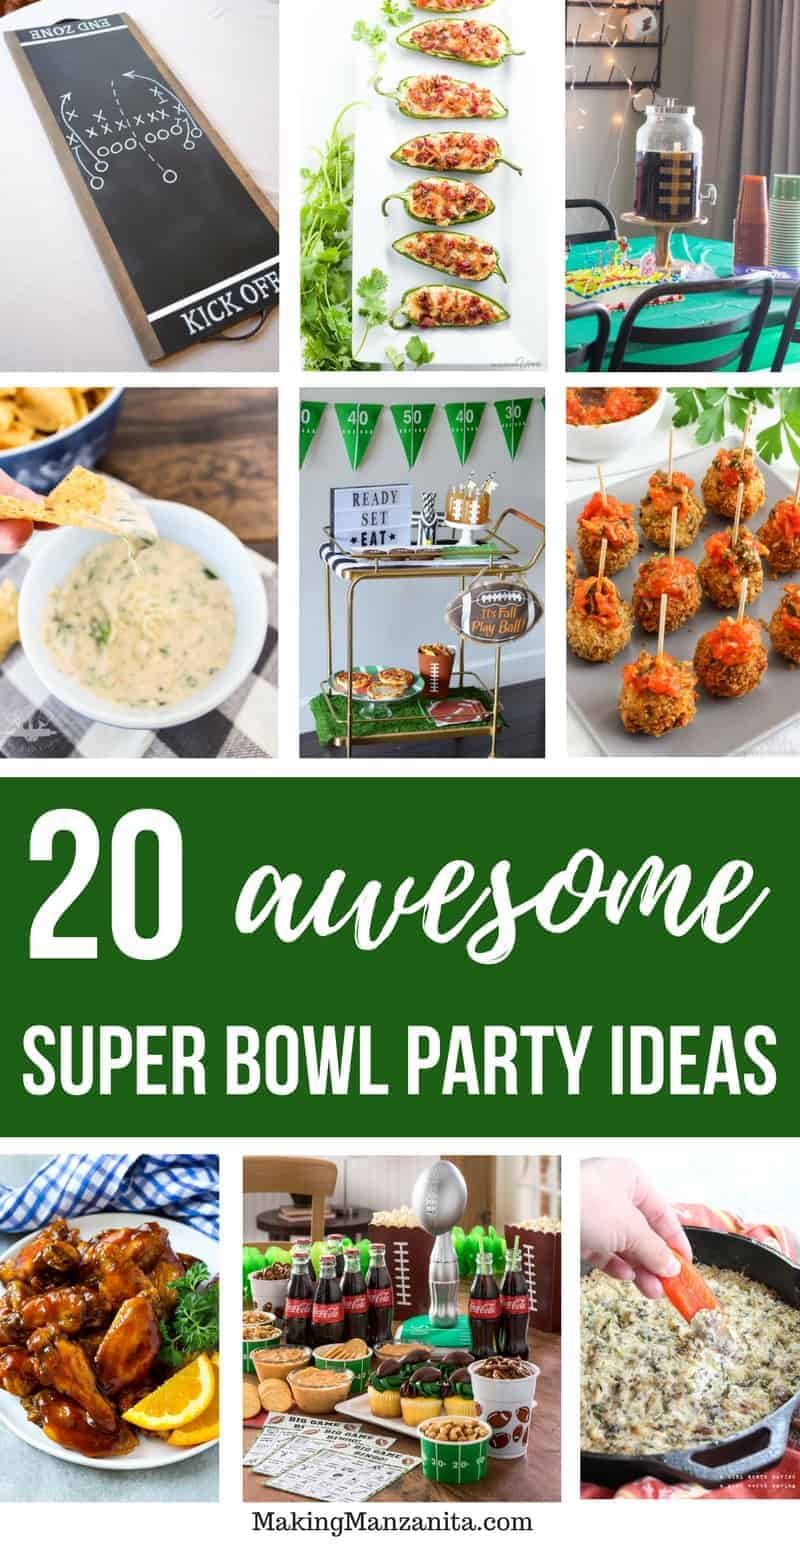 If you're planning a Super Bowl party this year, hopefully these awesome Super Bowl party decorations and food ideas will inspire you.